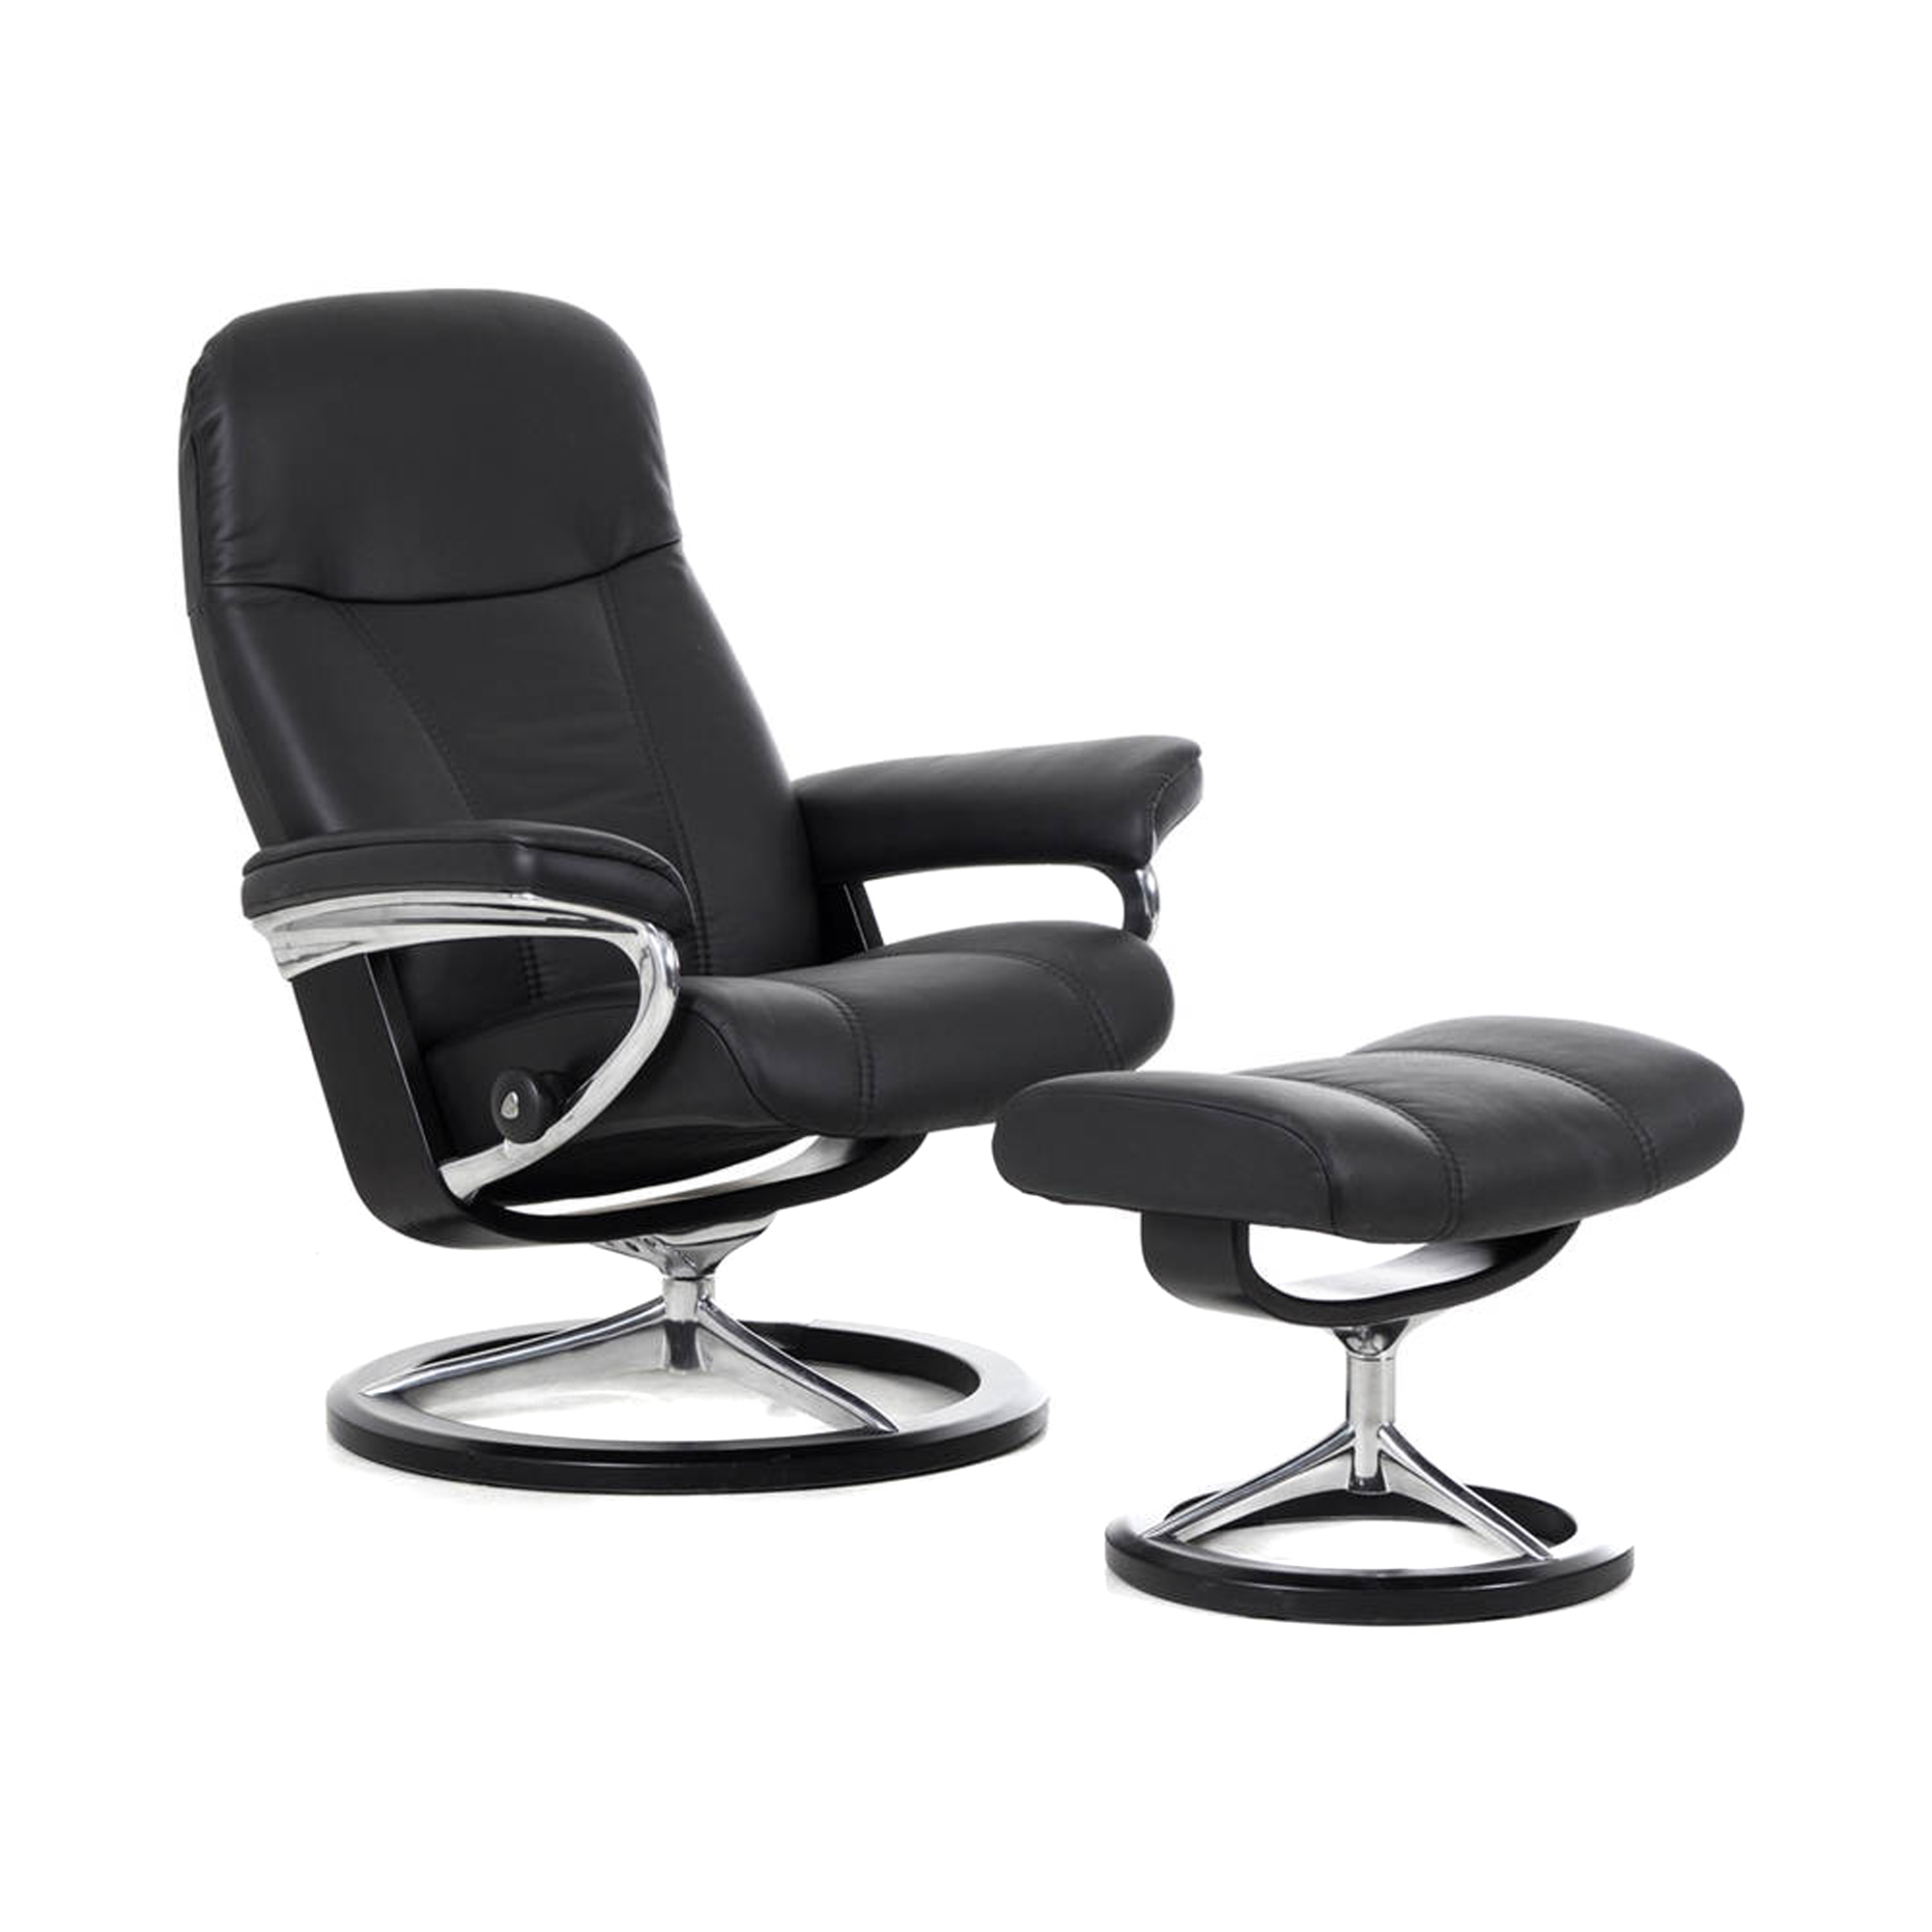 Time Out Sessel Gebraucht Conform Easy Sessel Stressless Sessel Consul M Möbel Preiss